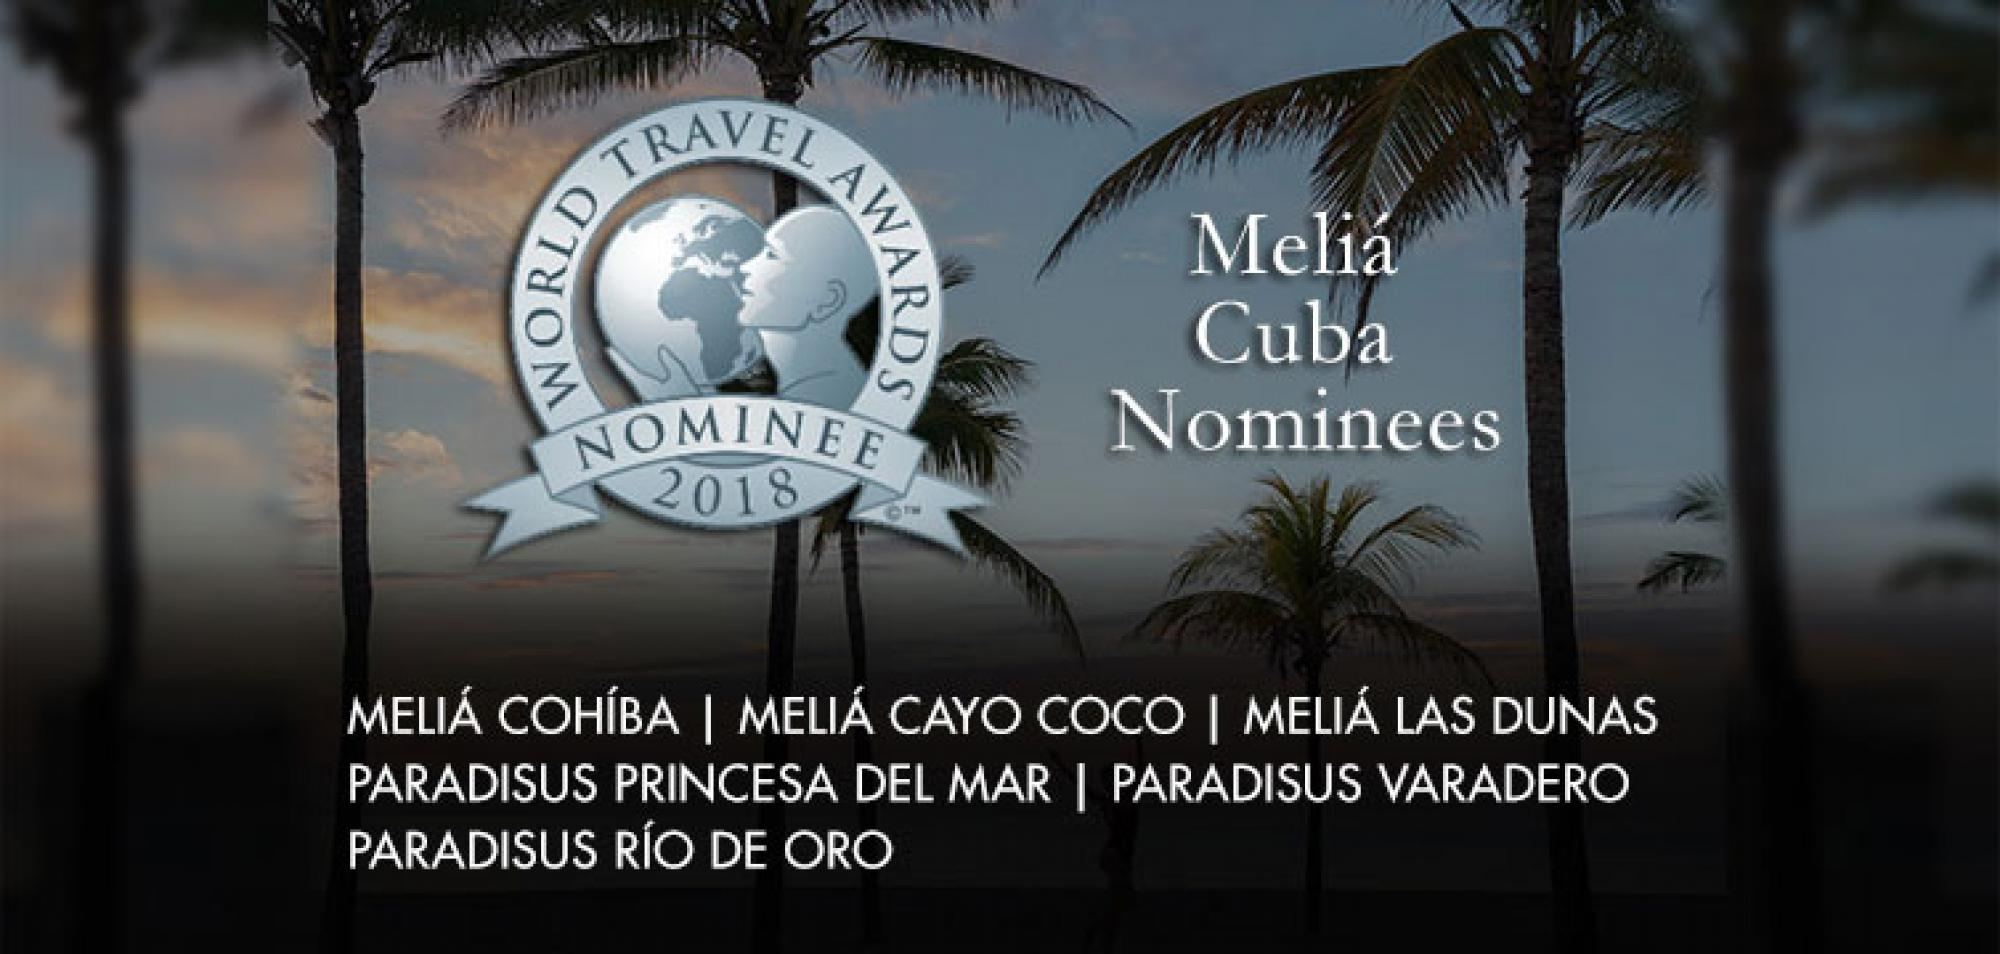 Nominated to World Travel Awards Six Melia Hotels in Cuba